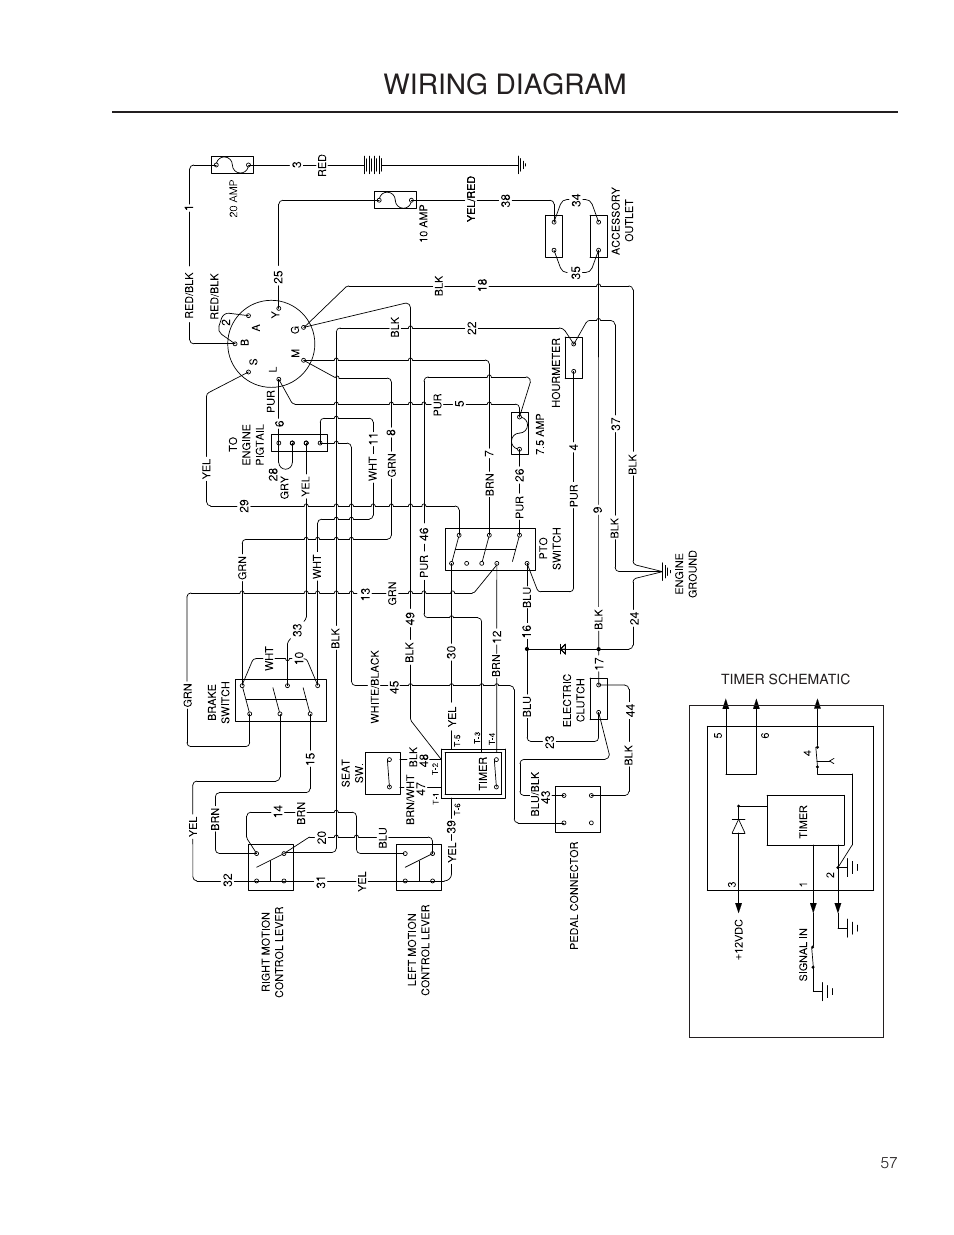 Wiring Diagrams Wiring Diagram Yazoo Kees Zpkw5426 User